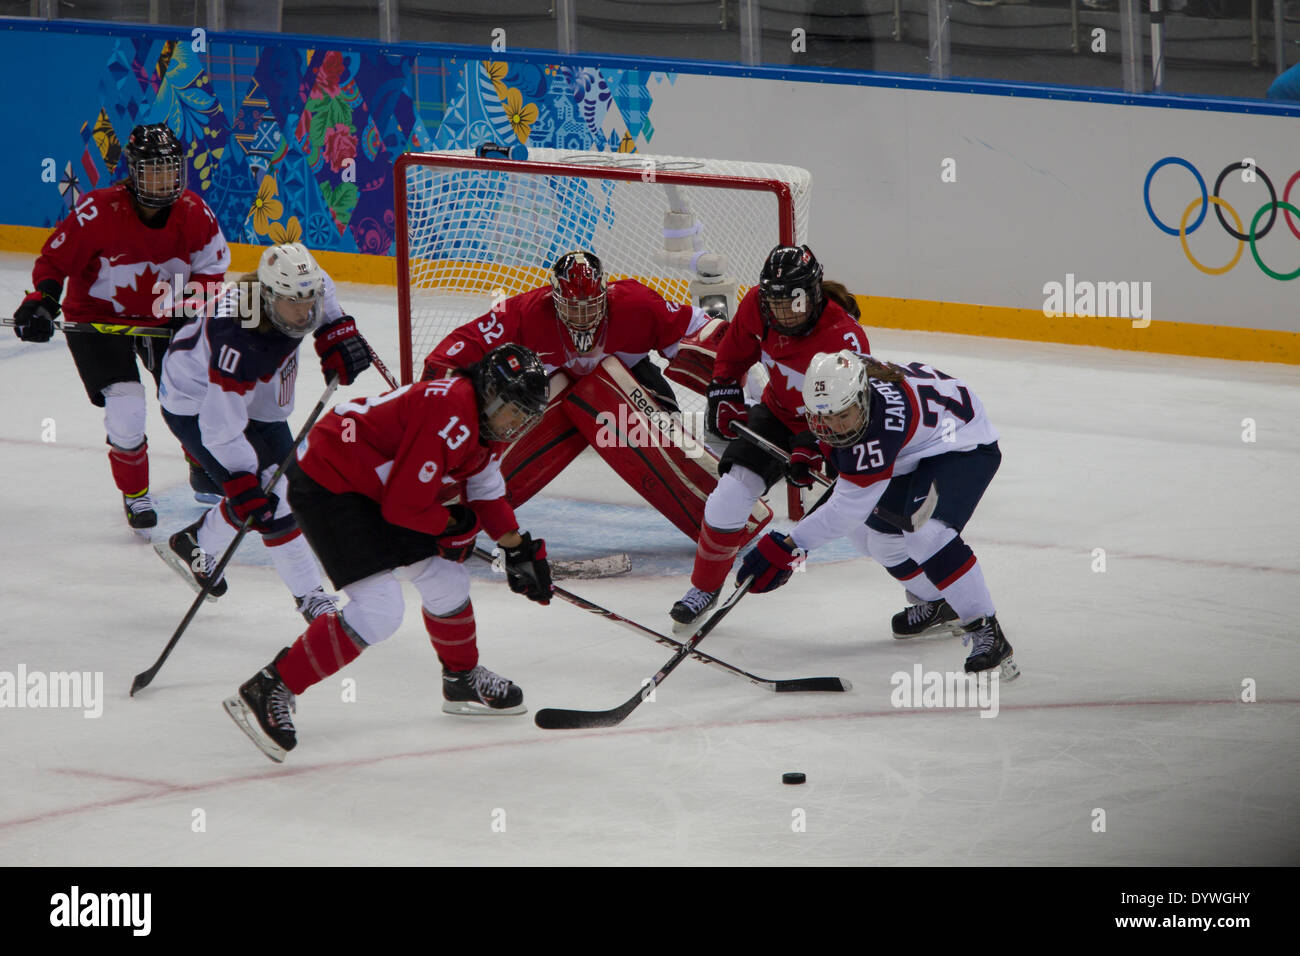 USA-Canada Women's Ice Hockey at the Olympic Winter Games, Sochi 2014 - Stock Image